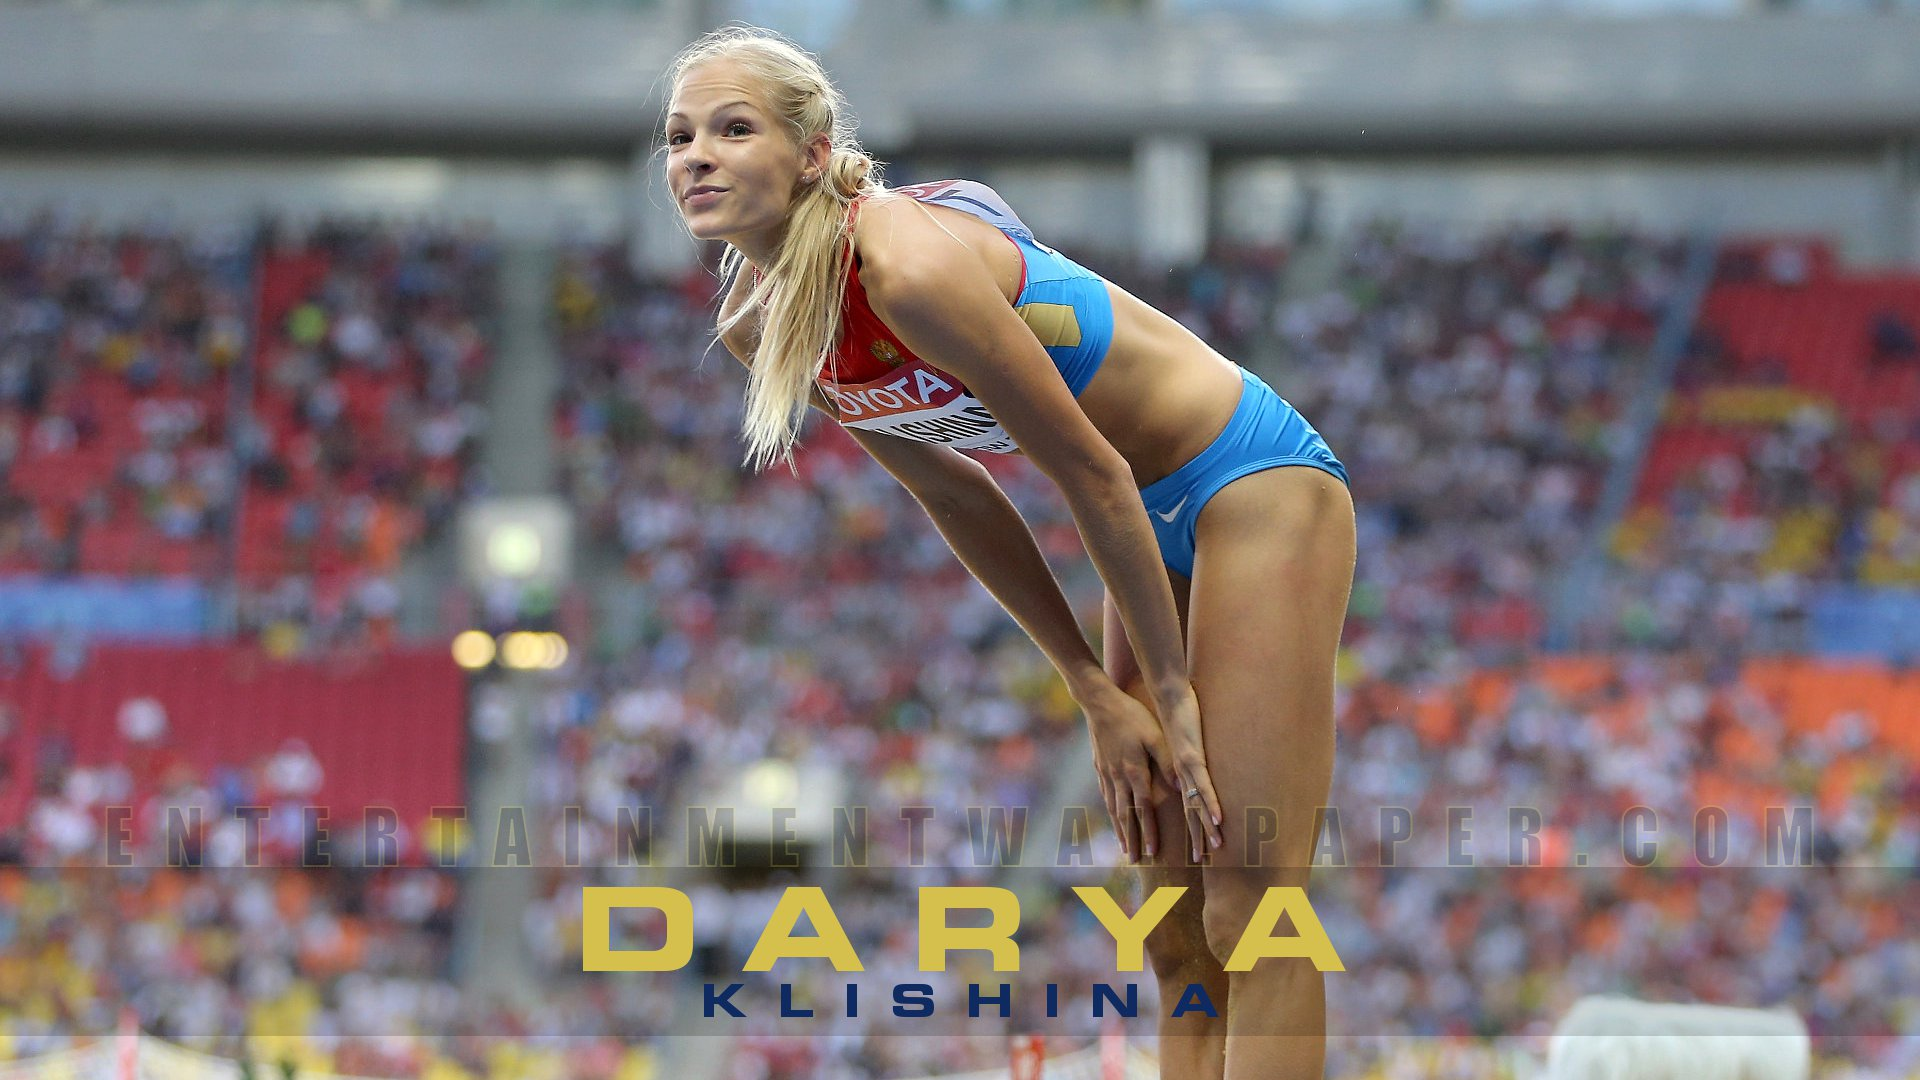 Darya Klishina Wallpaper - Original size, download now.